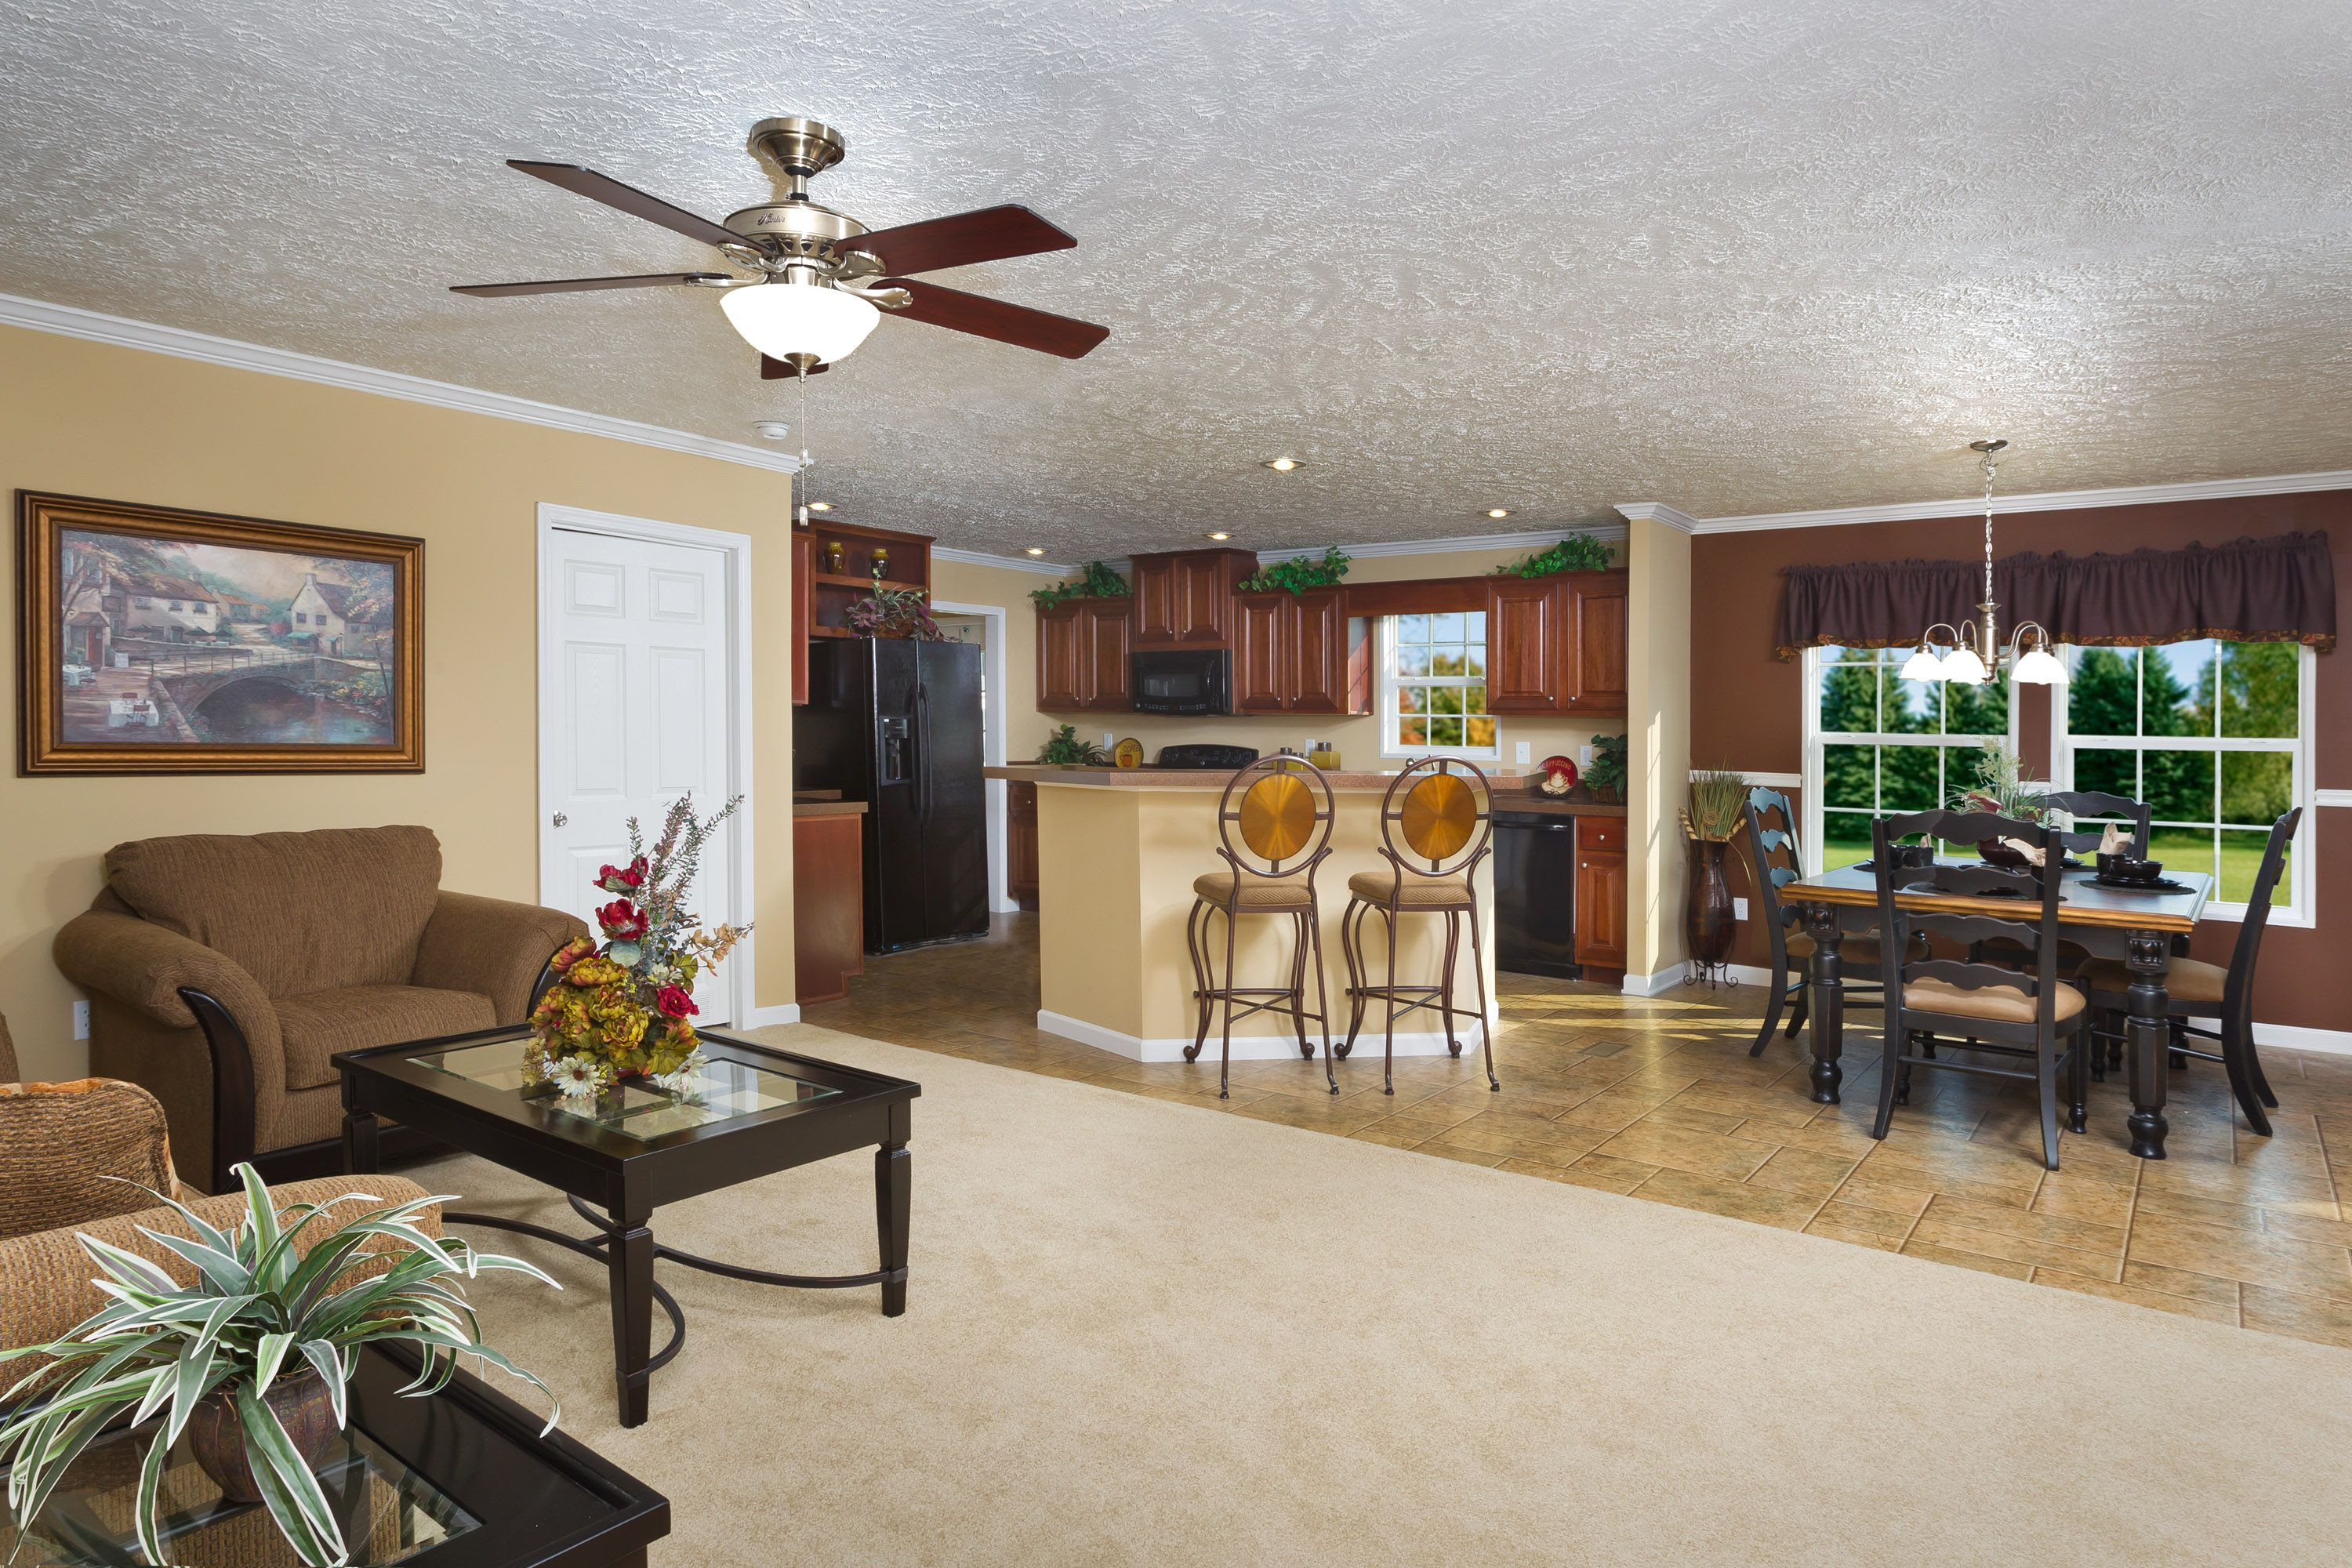 Clayton Homes Of Johnson City Tn New Homes Home Clayton Homes Manufactured Home